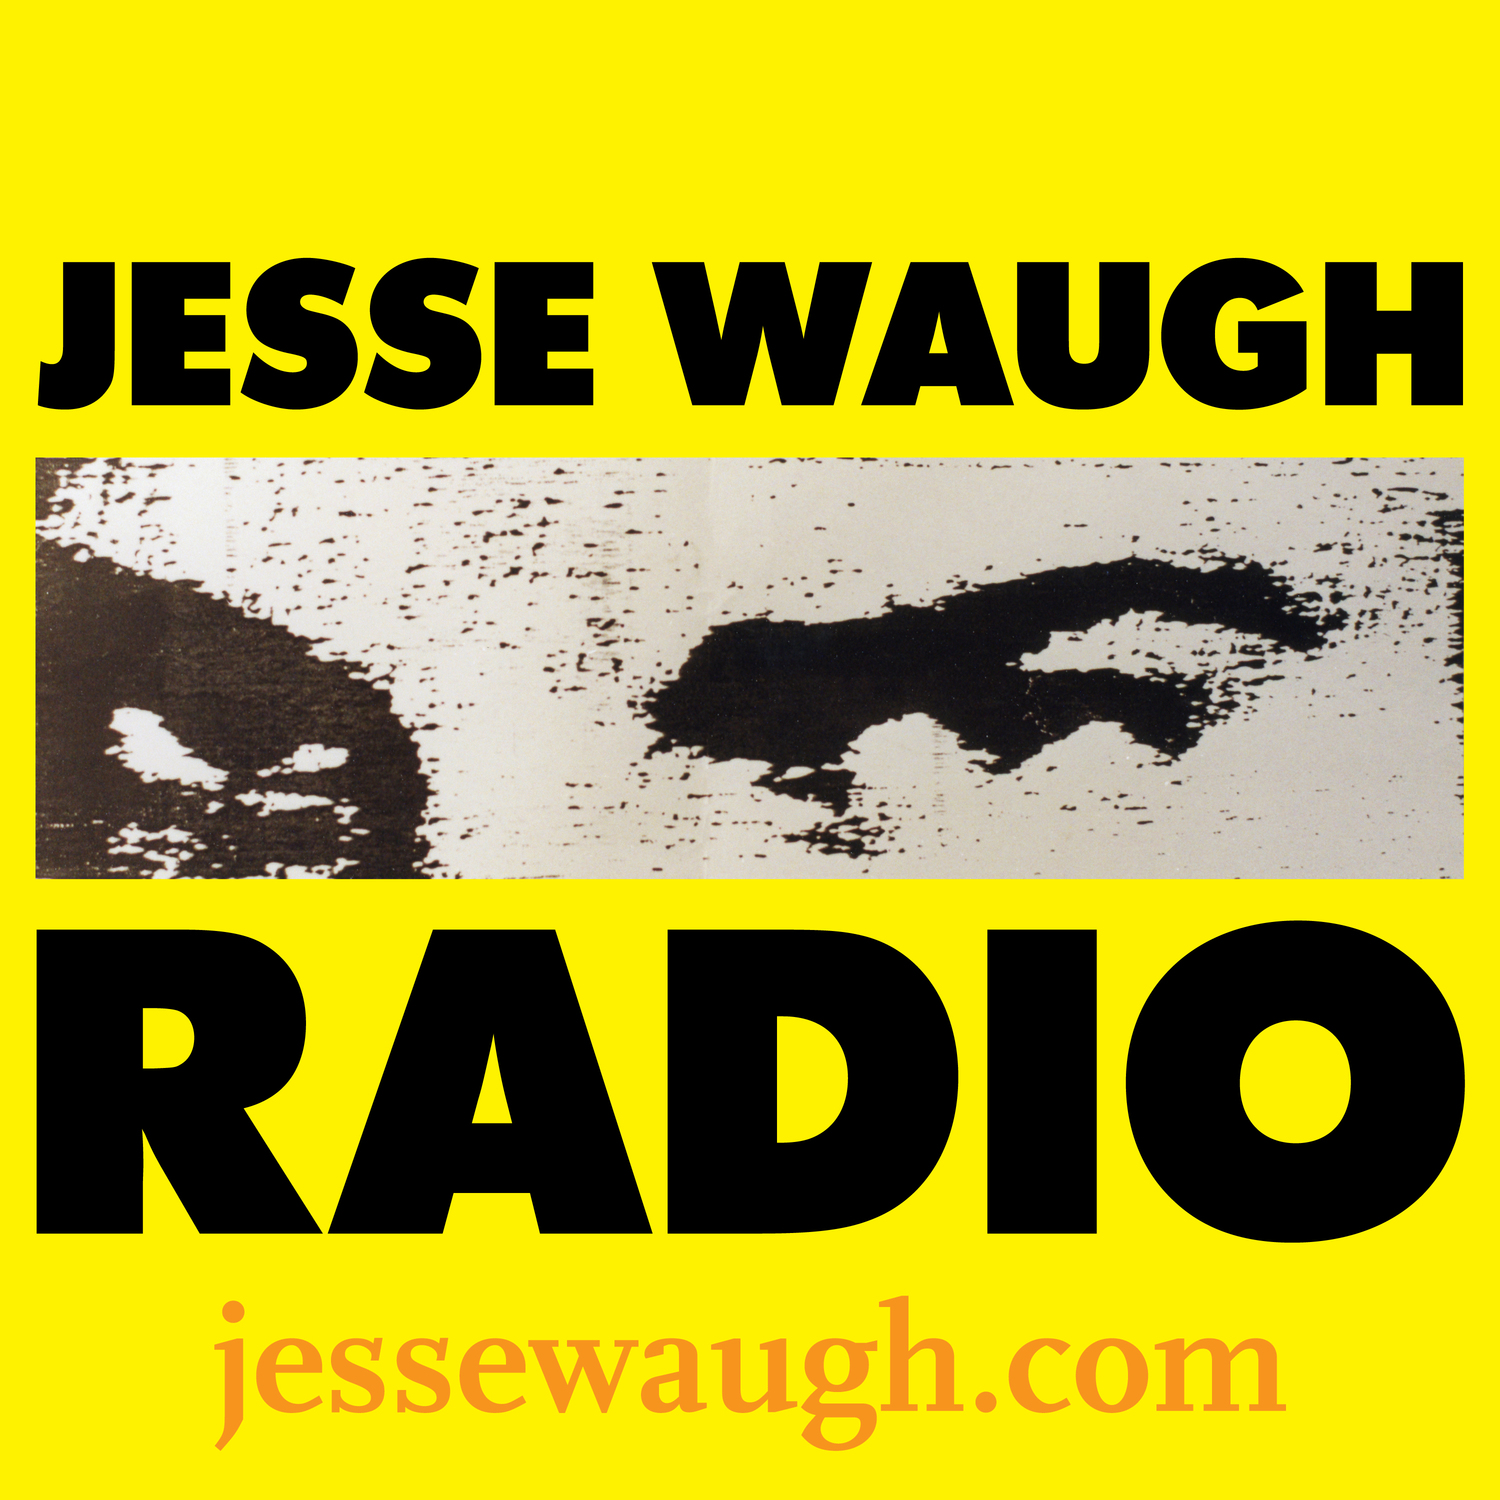 RADIO - Jesse Waugh